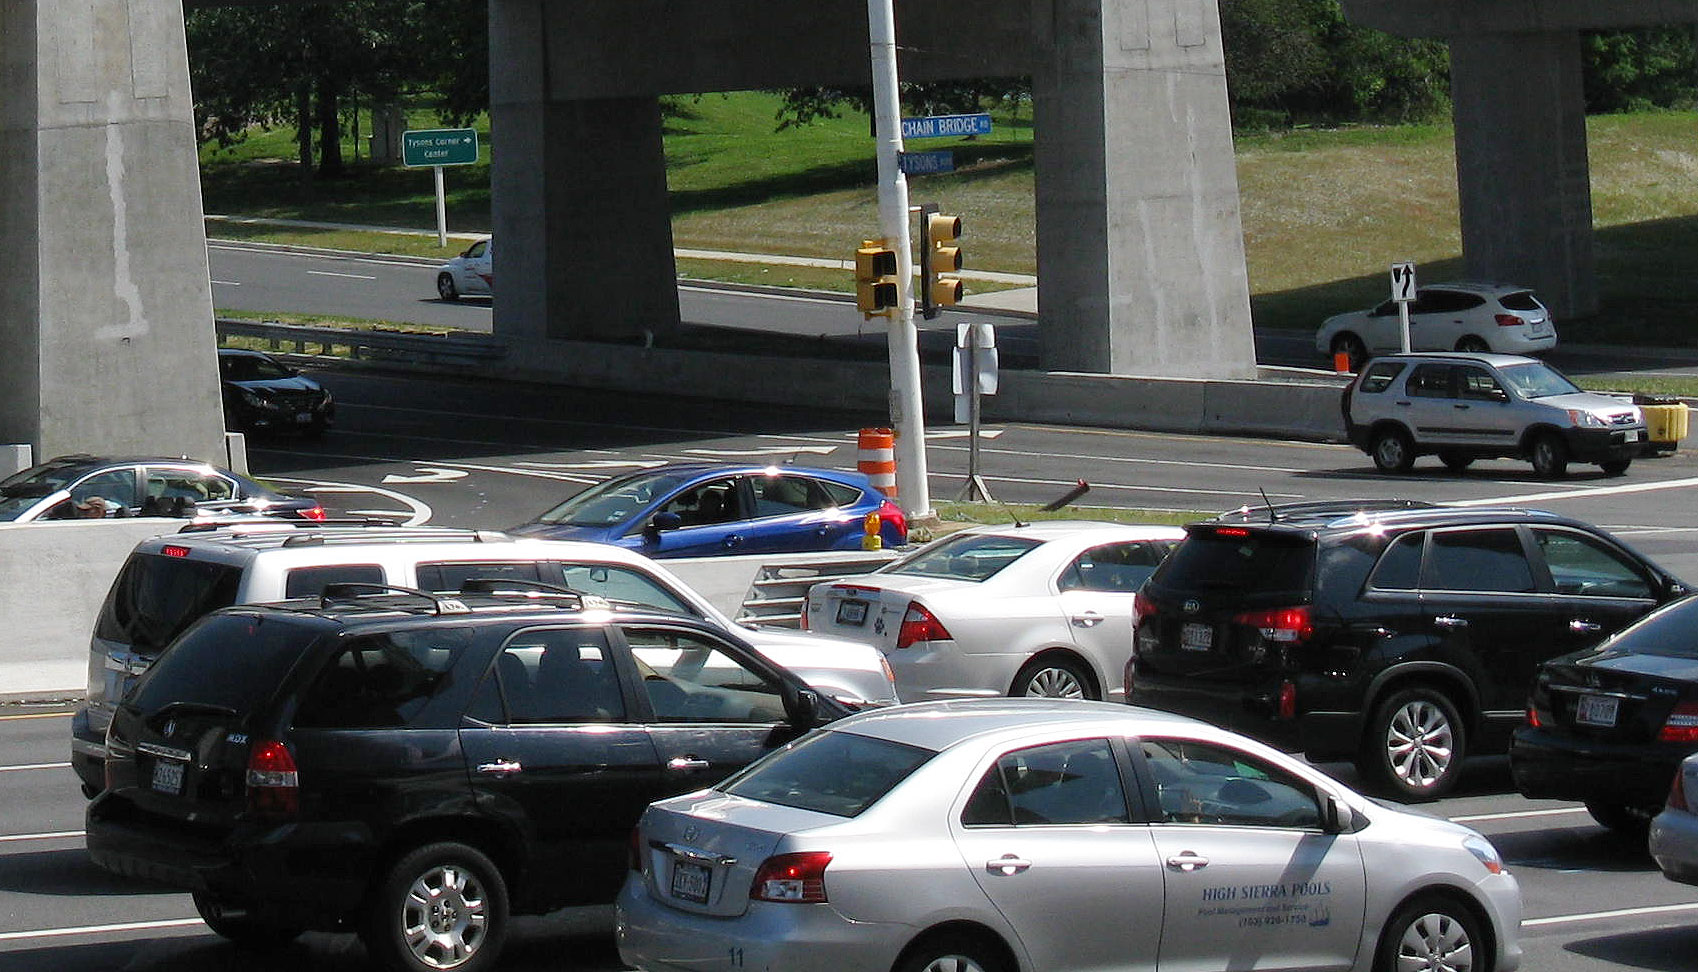 Drivers with history of falls more likely to crash, study finds